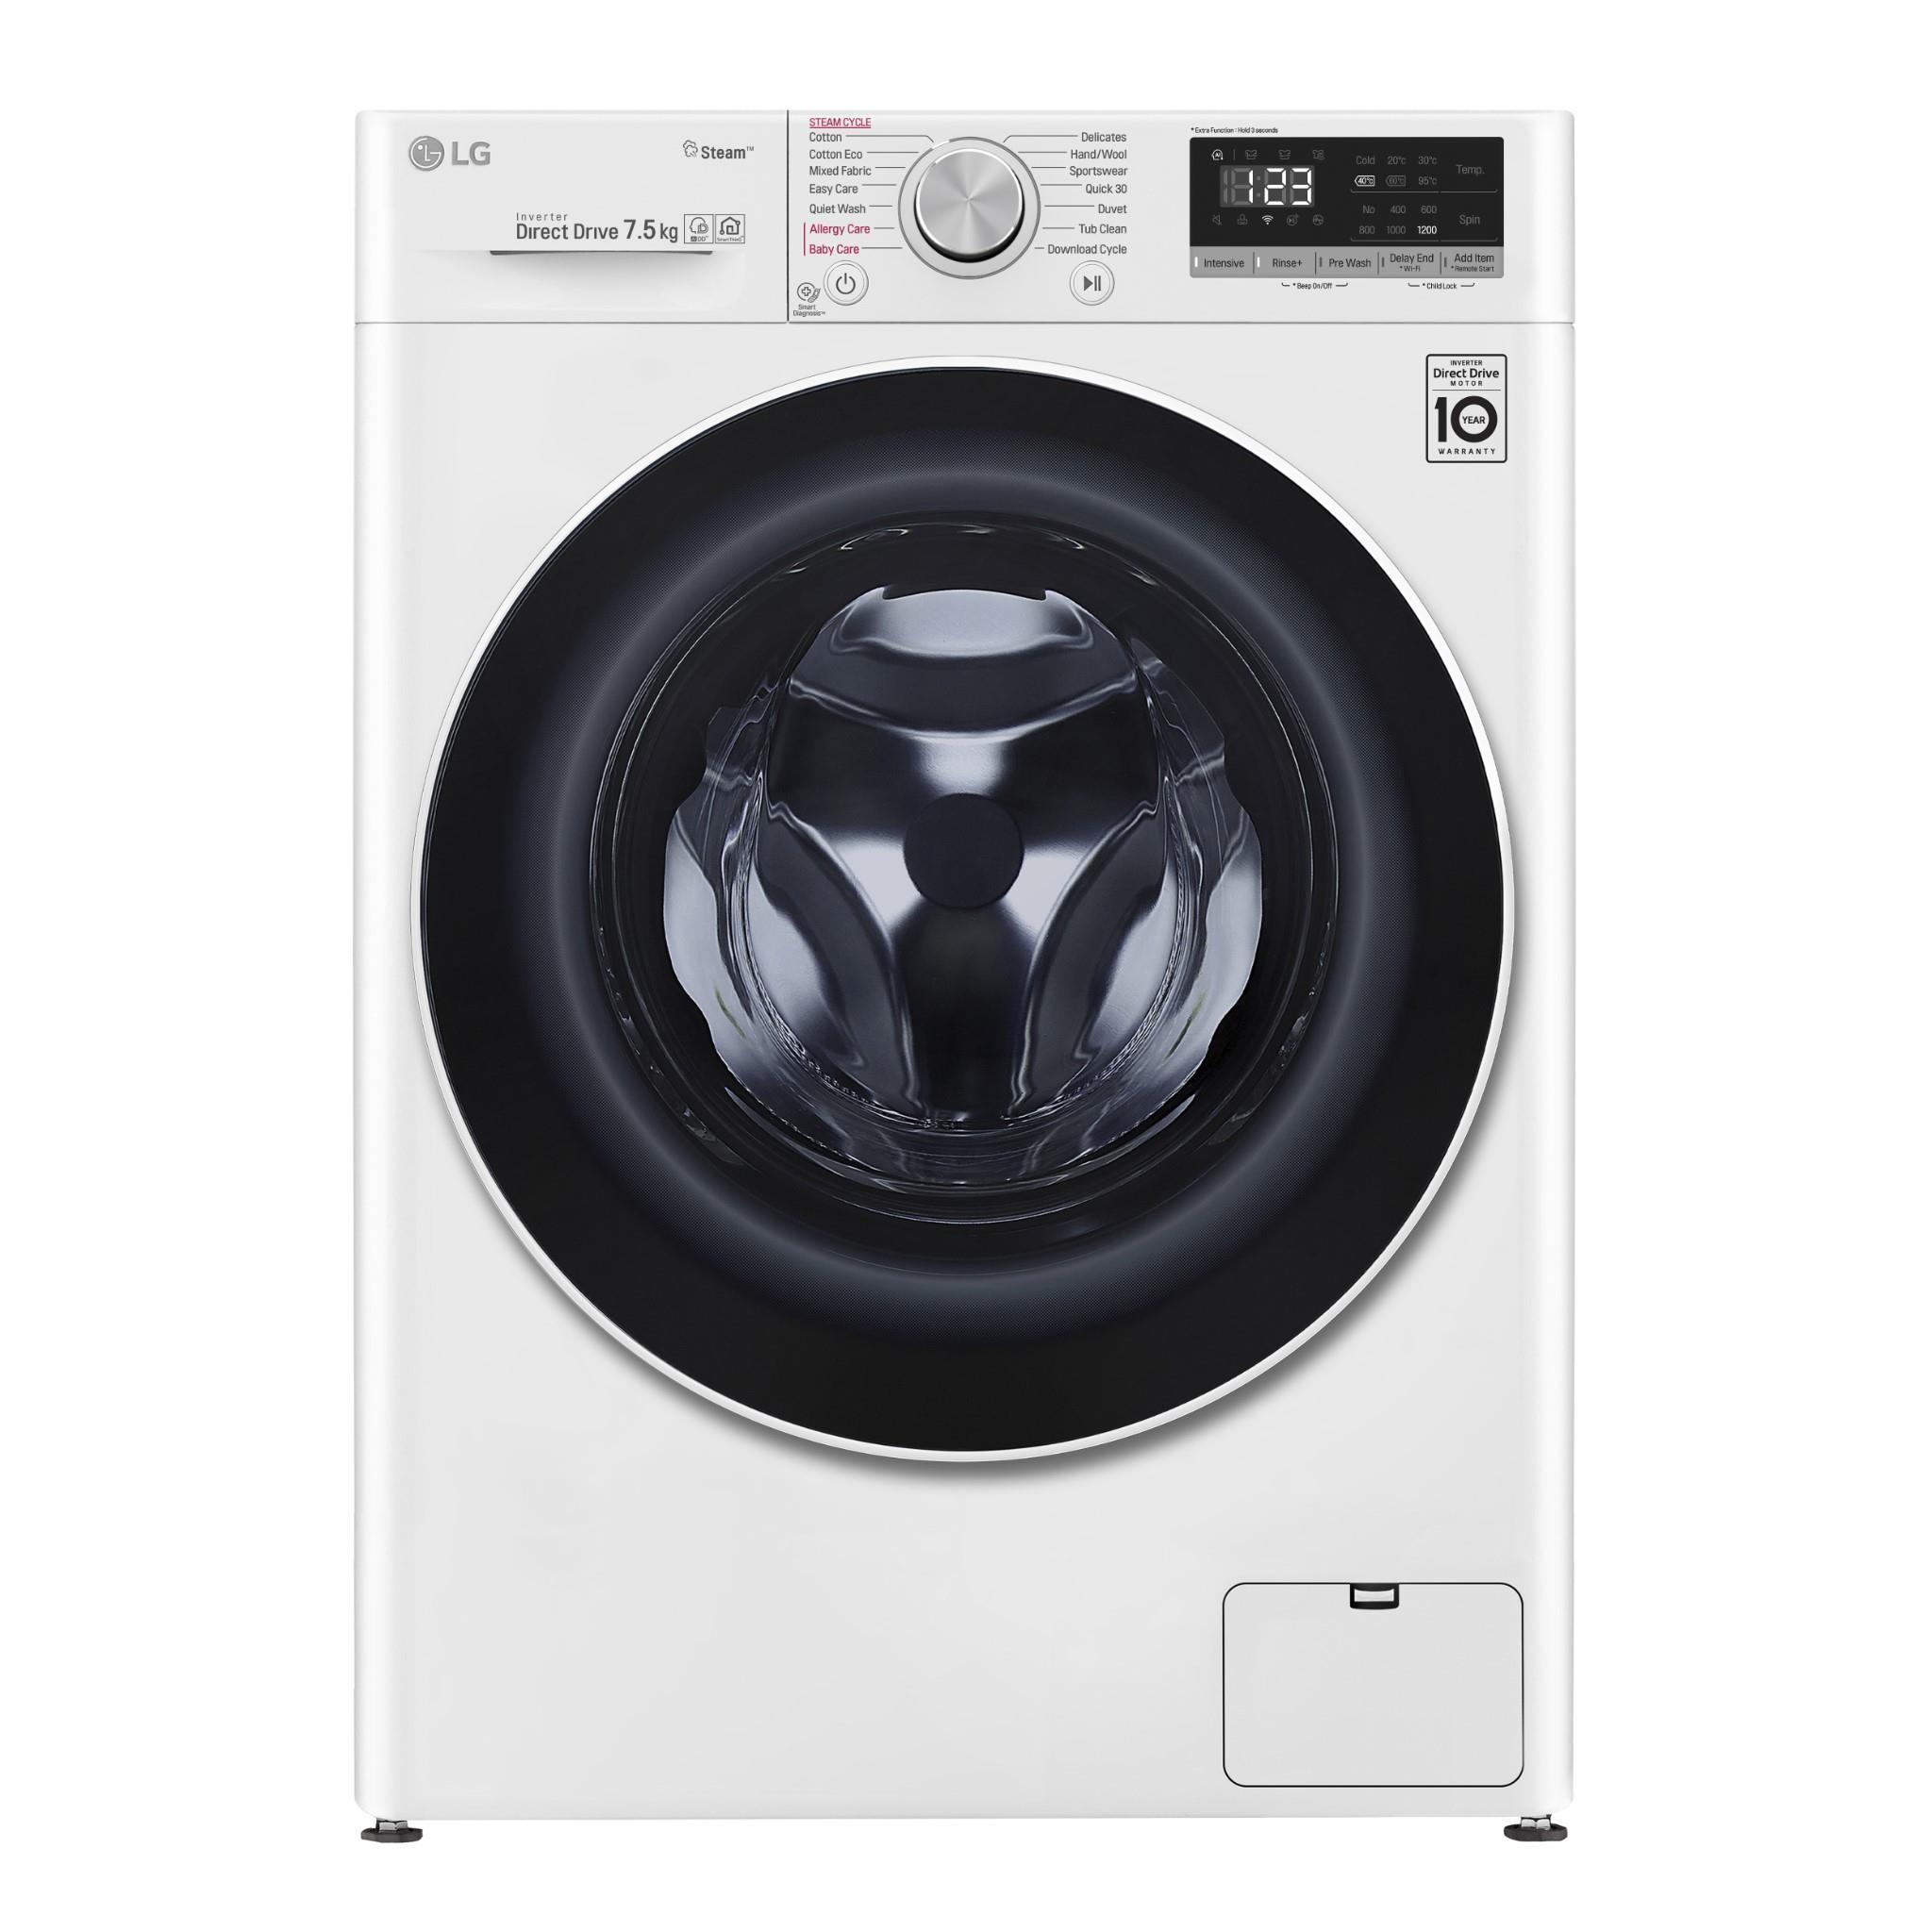 LG WV5-1275W 7.5kg AI Direct Drive Front Load Washer with Steam